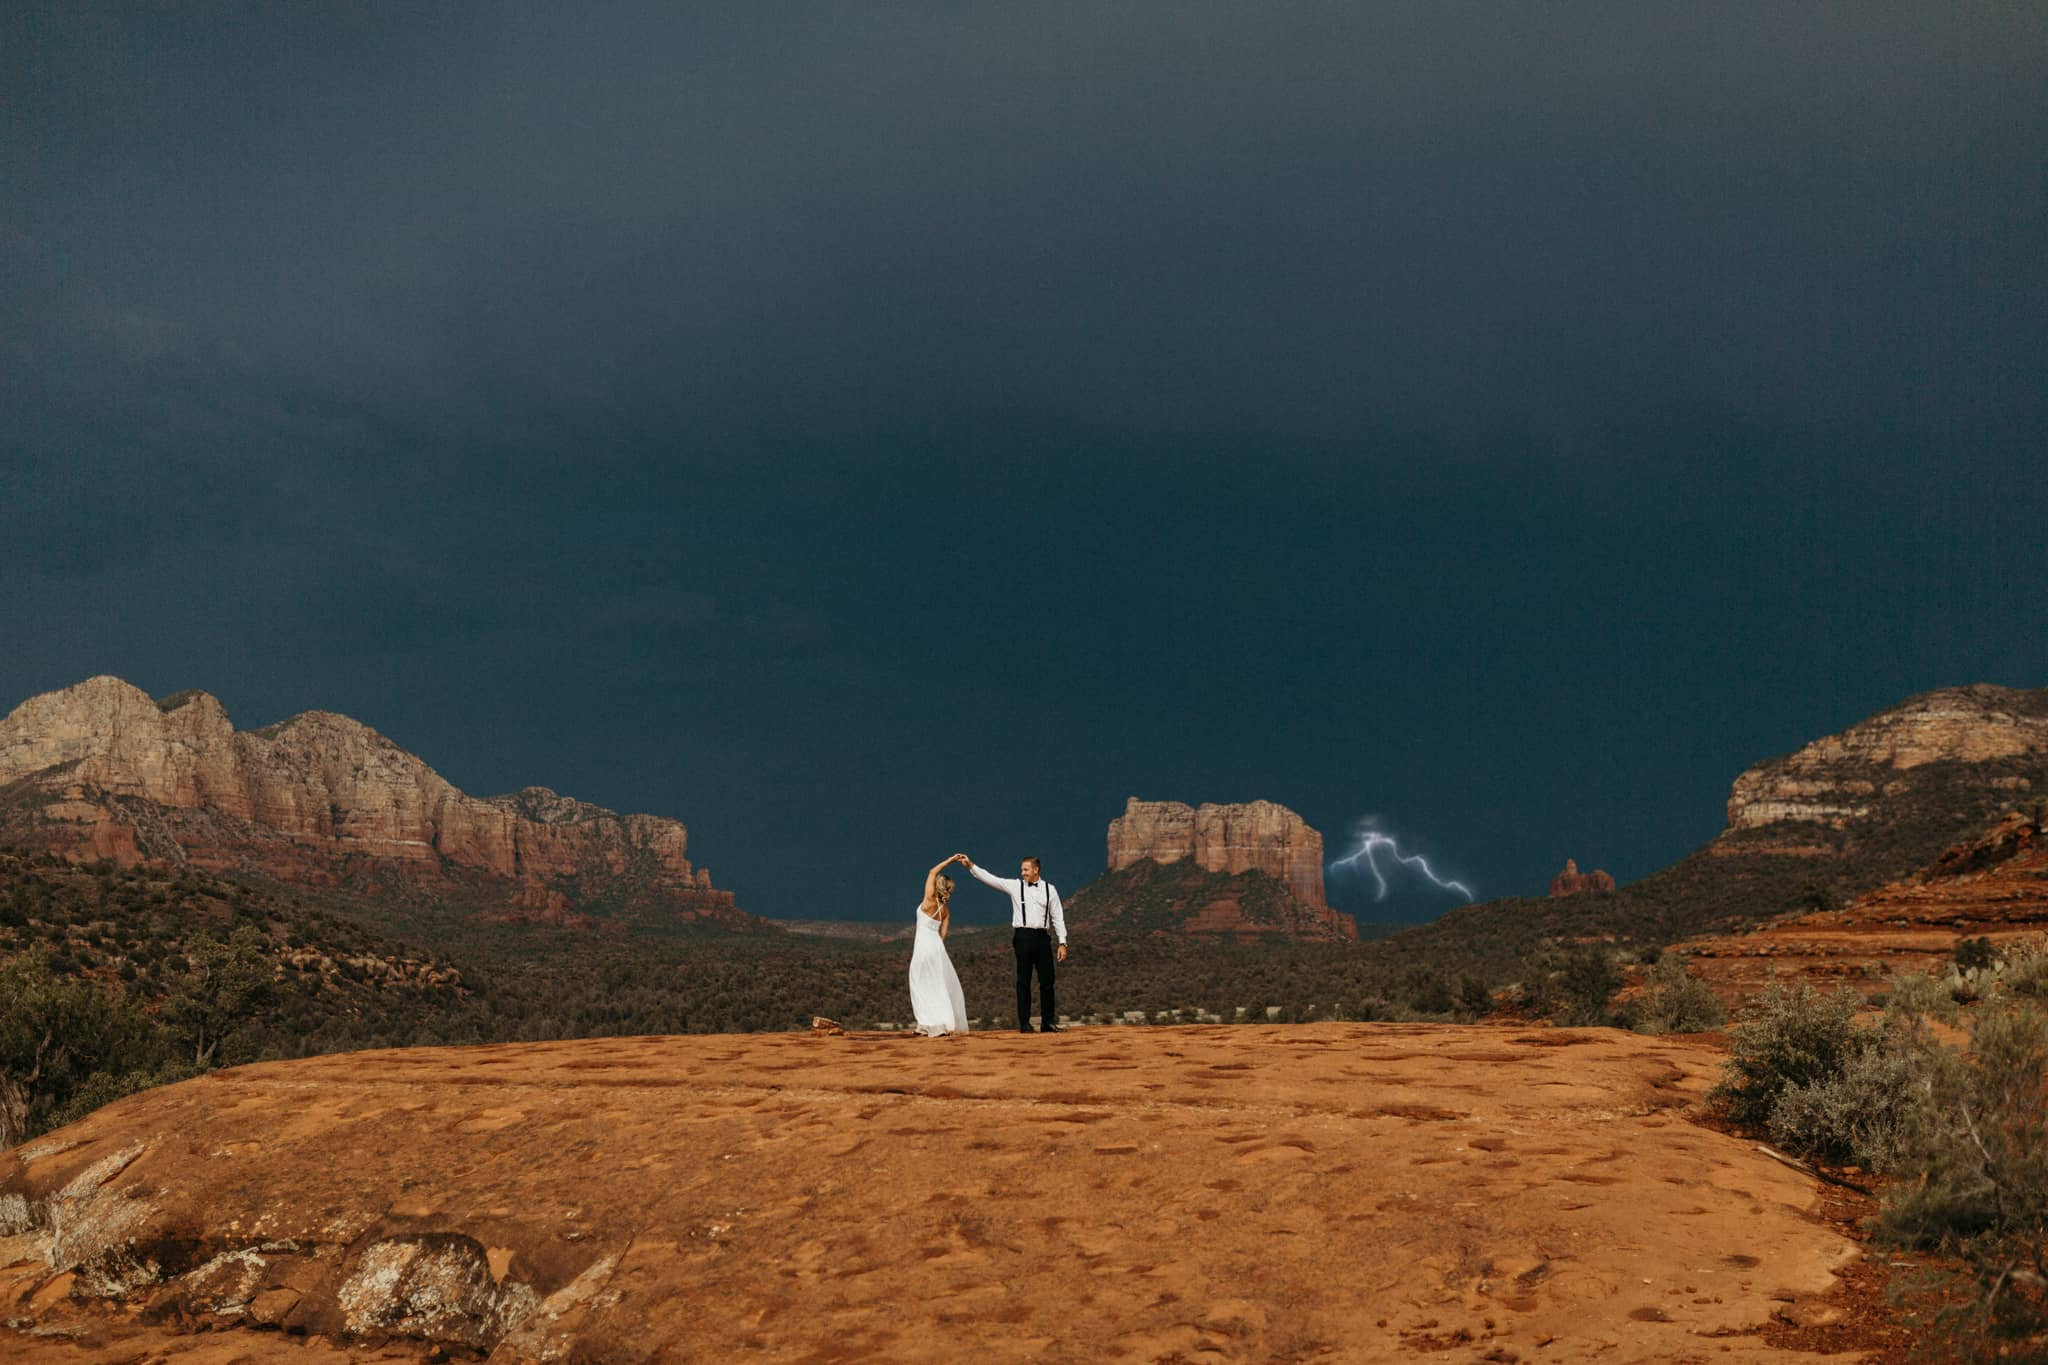 couple dances in the desert while lightning strikes in the background. Photo by Victoria Selman